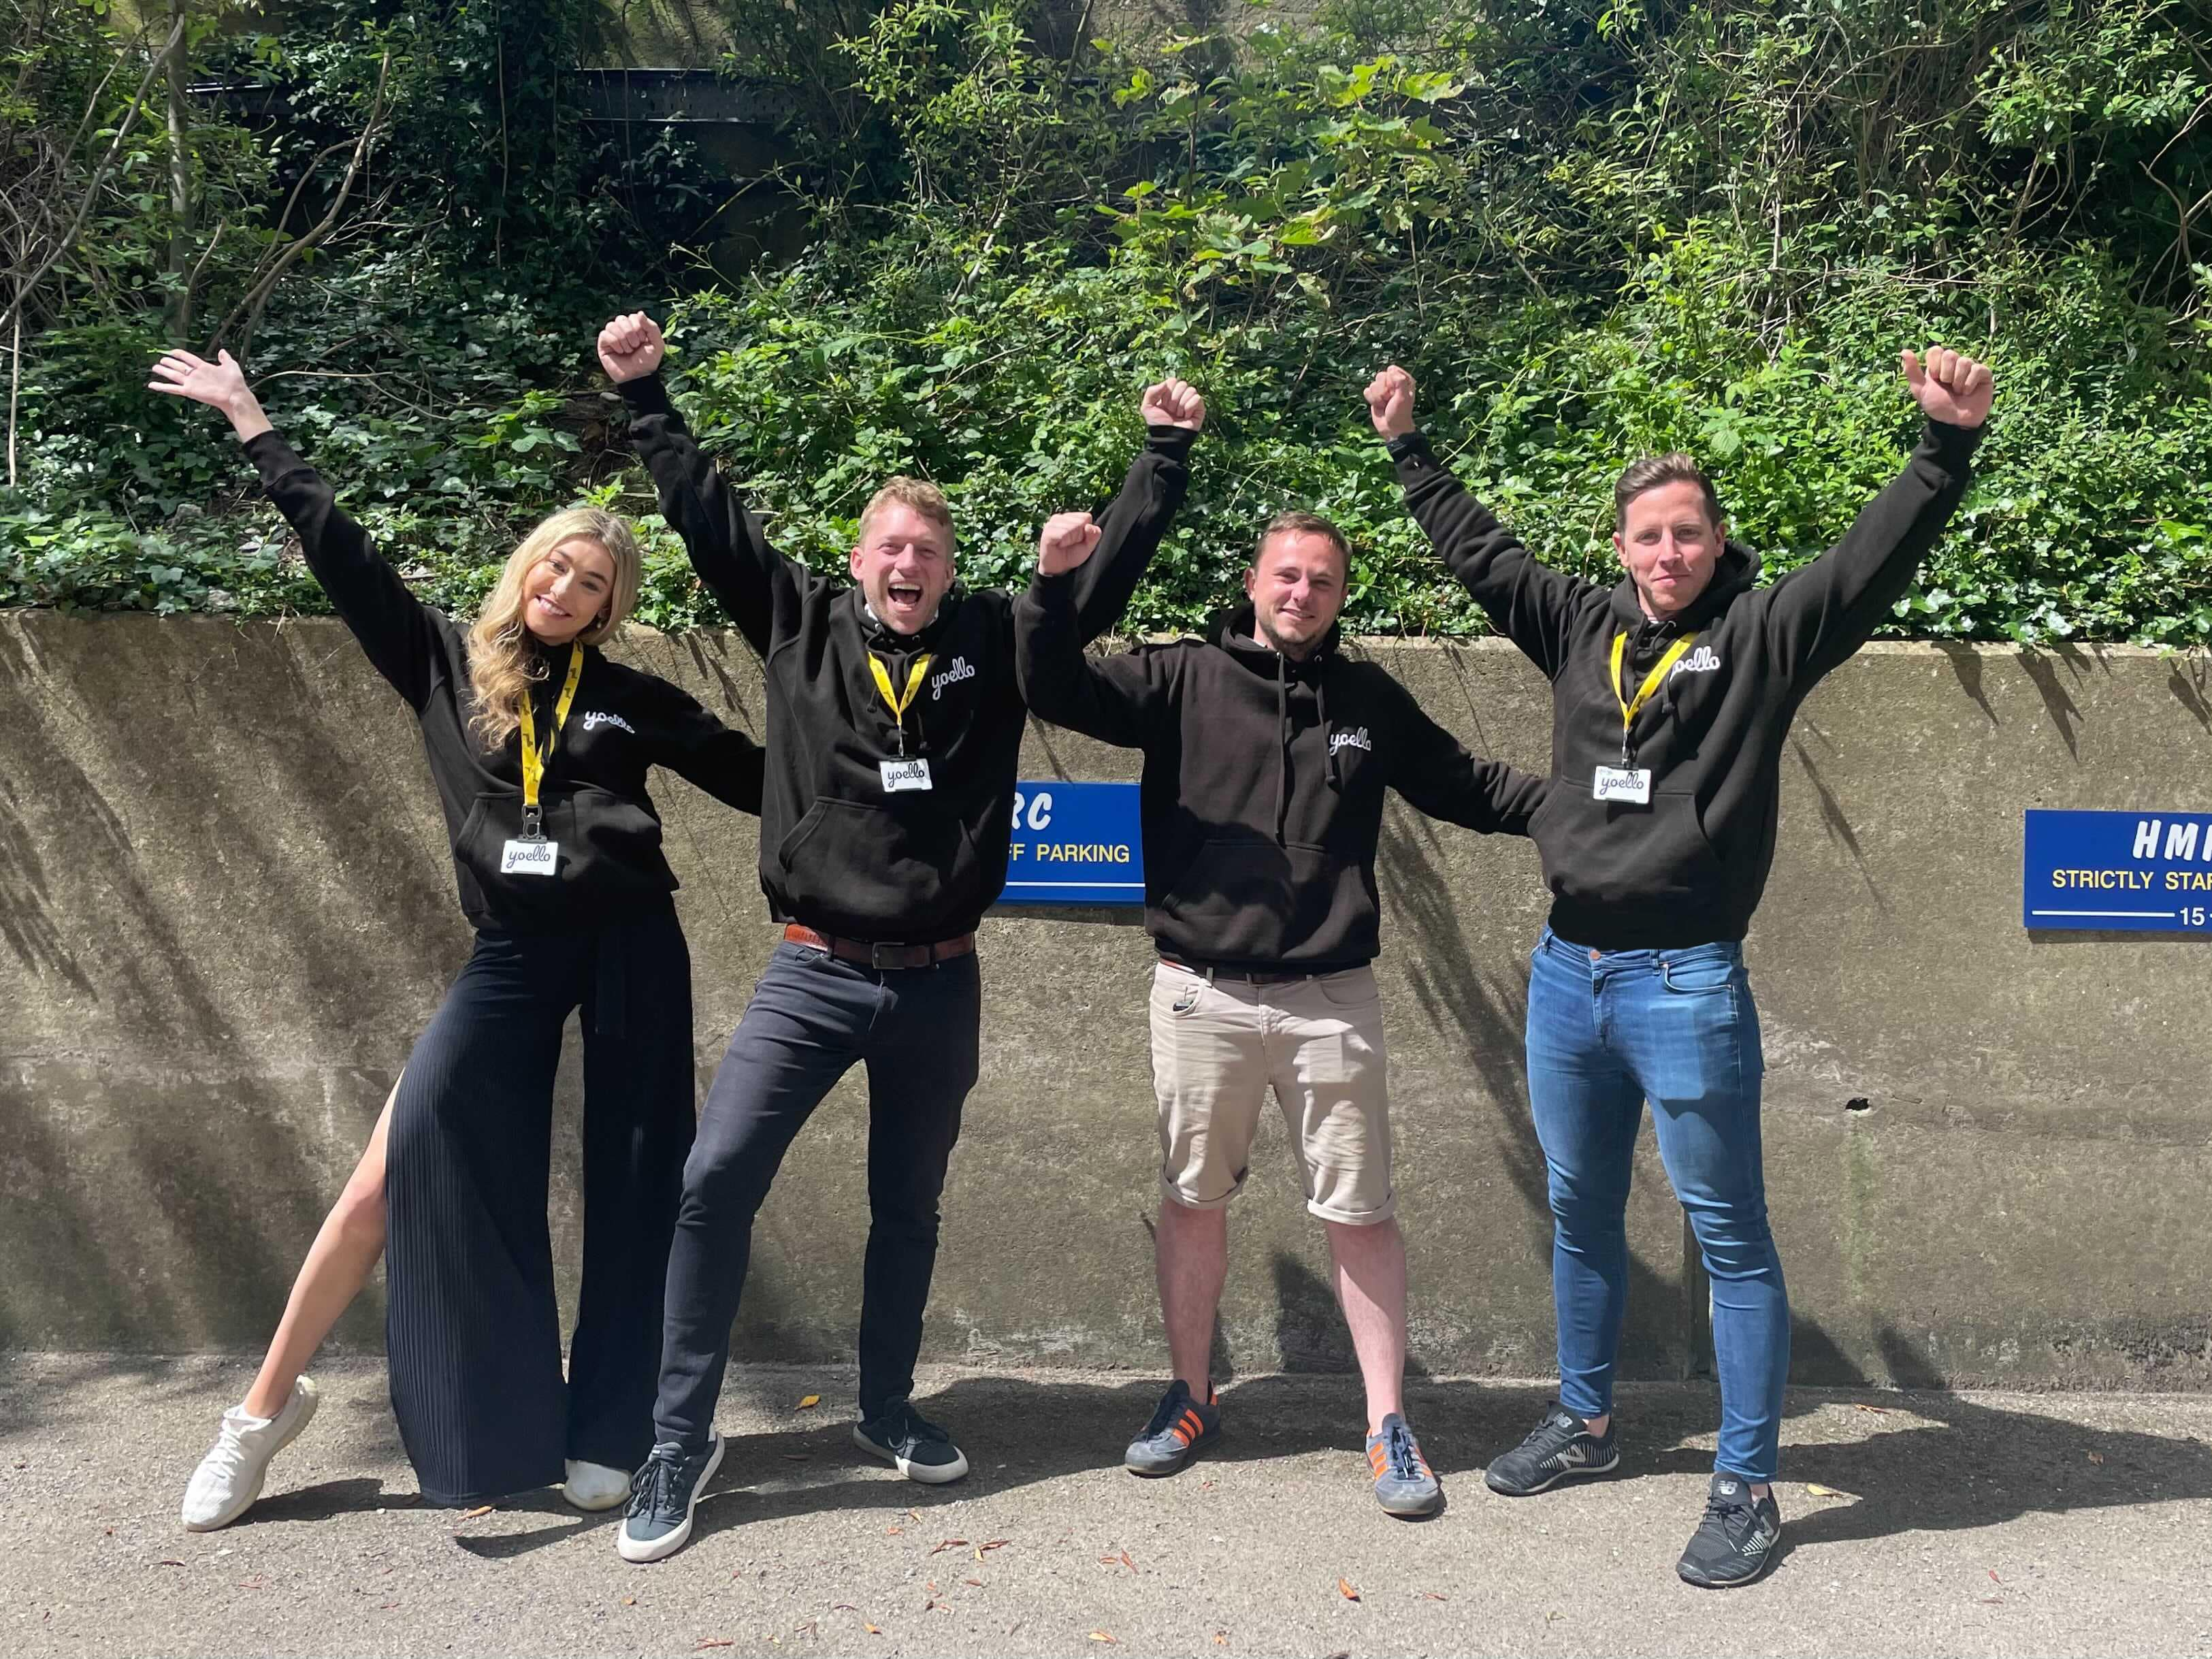 UK's fast rising fintech Yoello nominated for 8 awards in 8 days